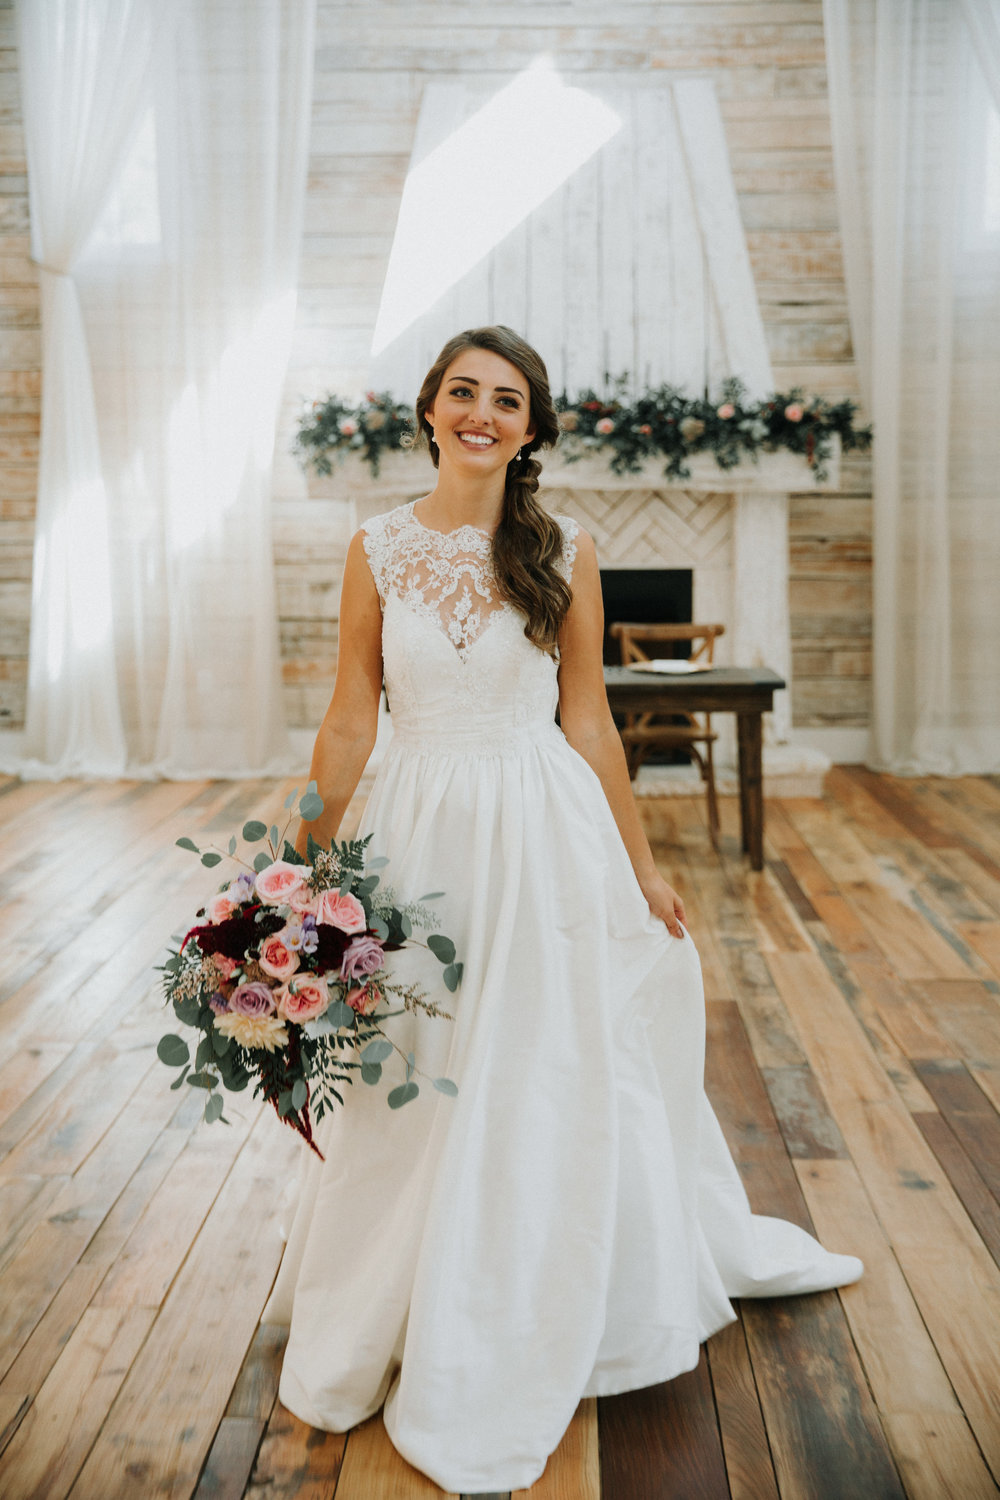 Gorgeous Wedding Dresses - Athens, Tennessee Barn Wedding -- The Overwhelmed Bride Wedding Blog